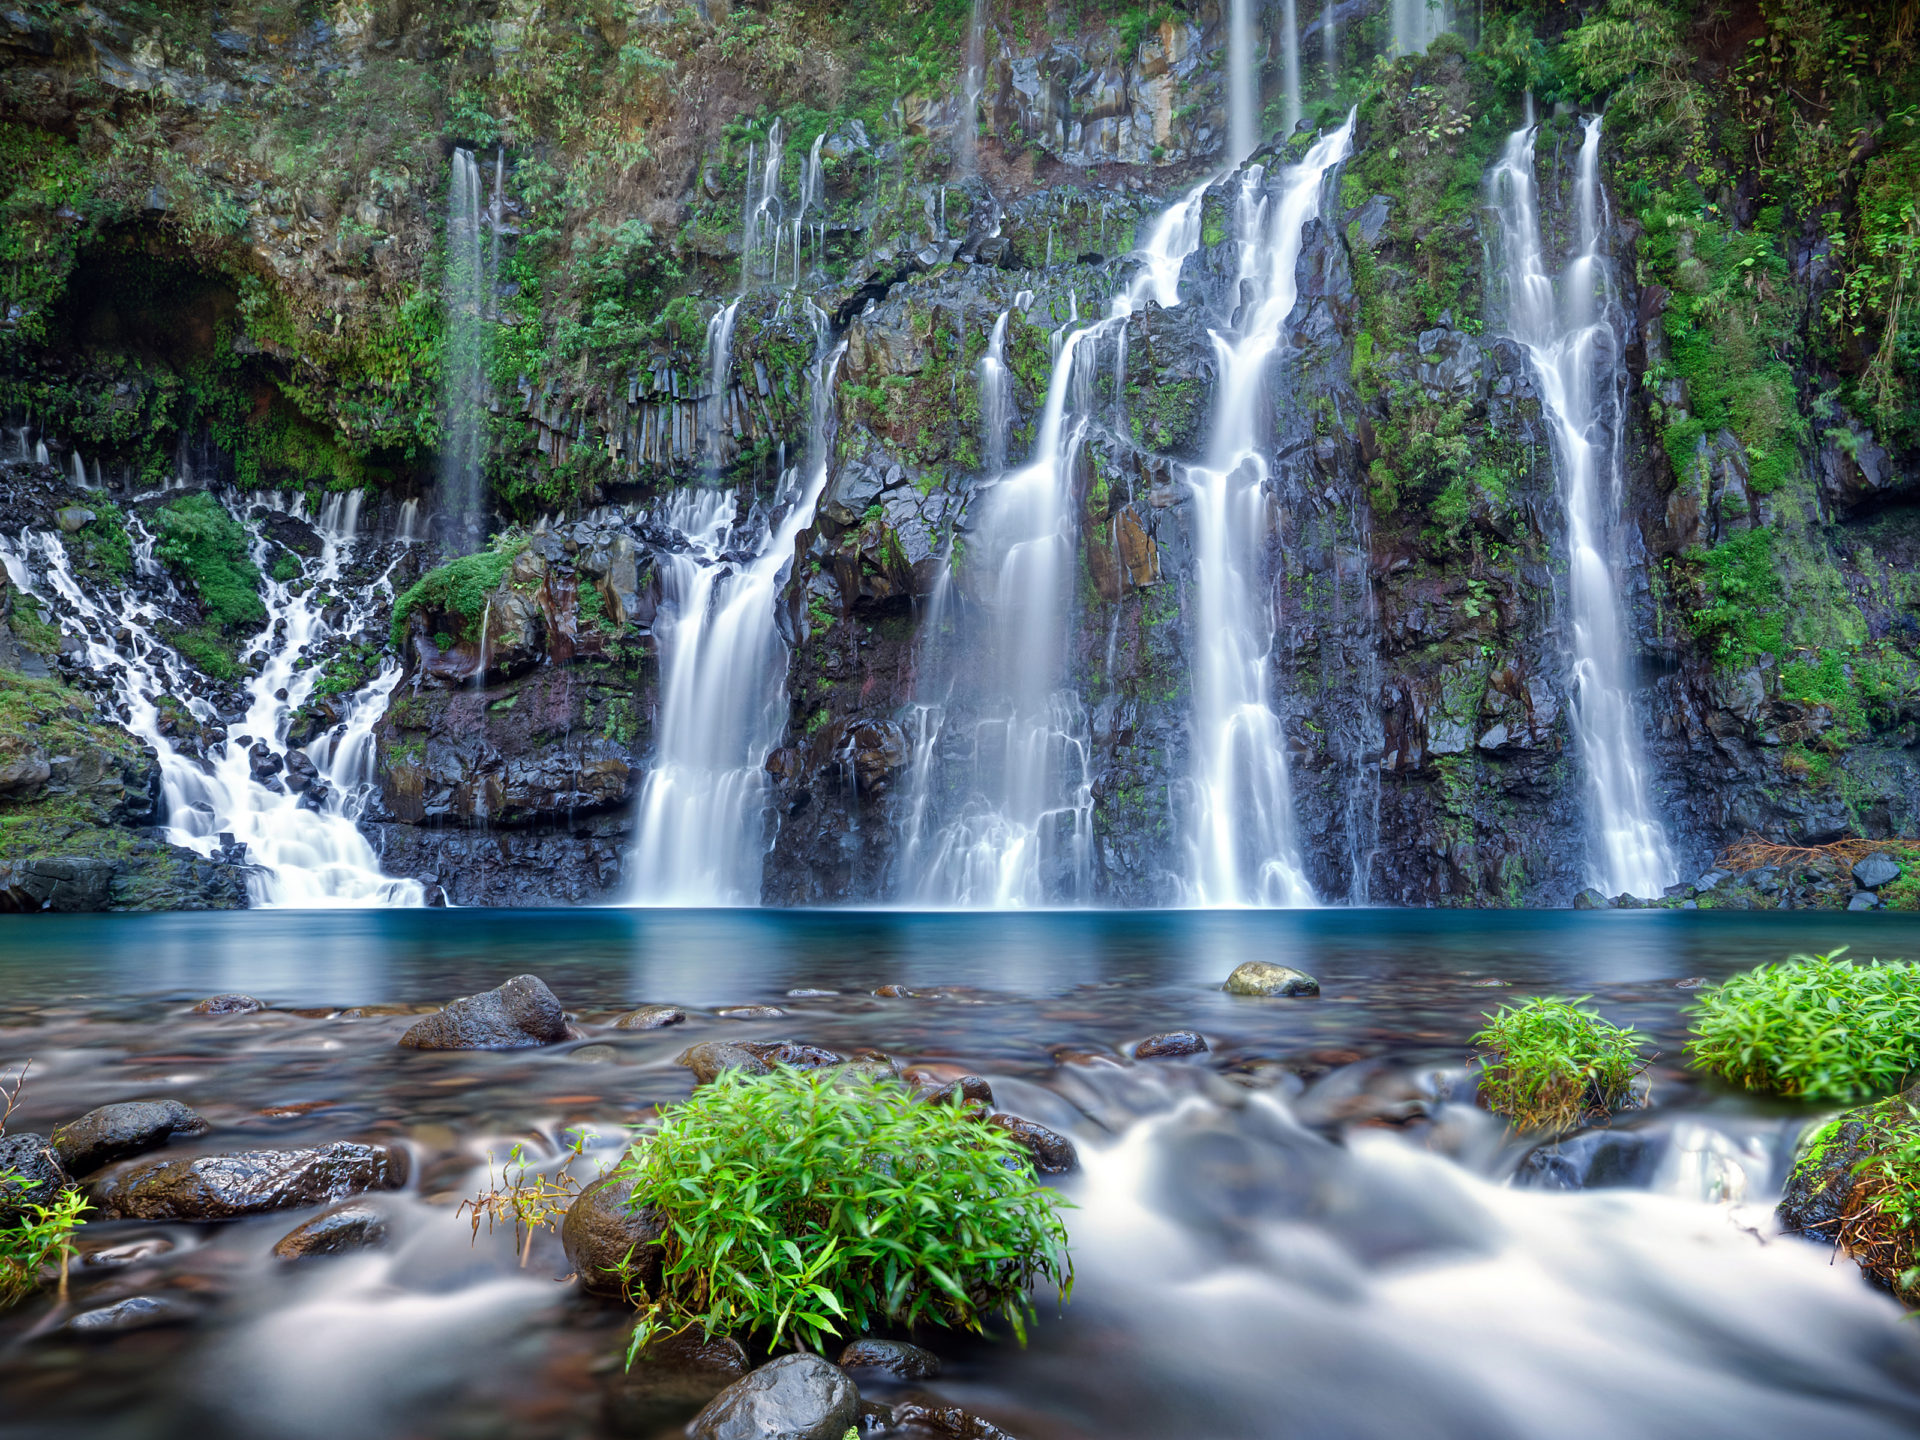 Wallpaper For Ipad Fall Langer River Falls Lakes Reunion Island Famous For Its